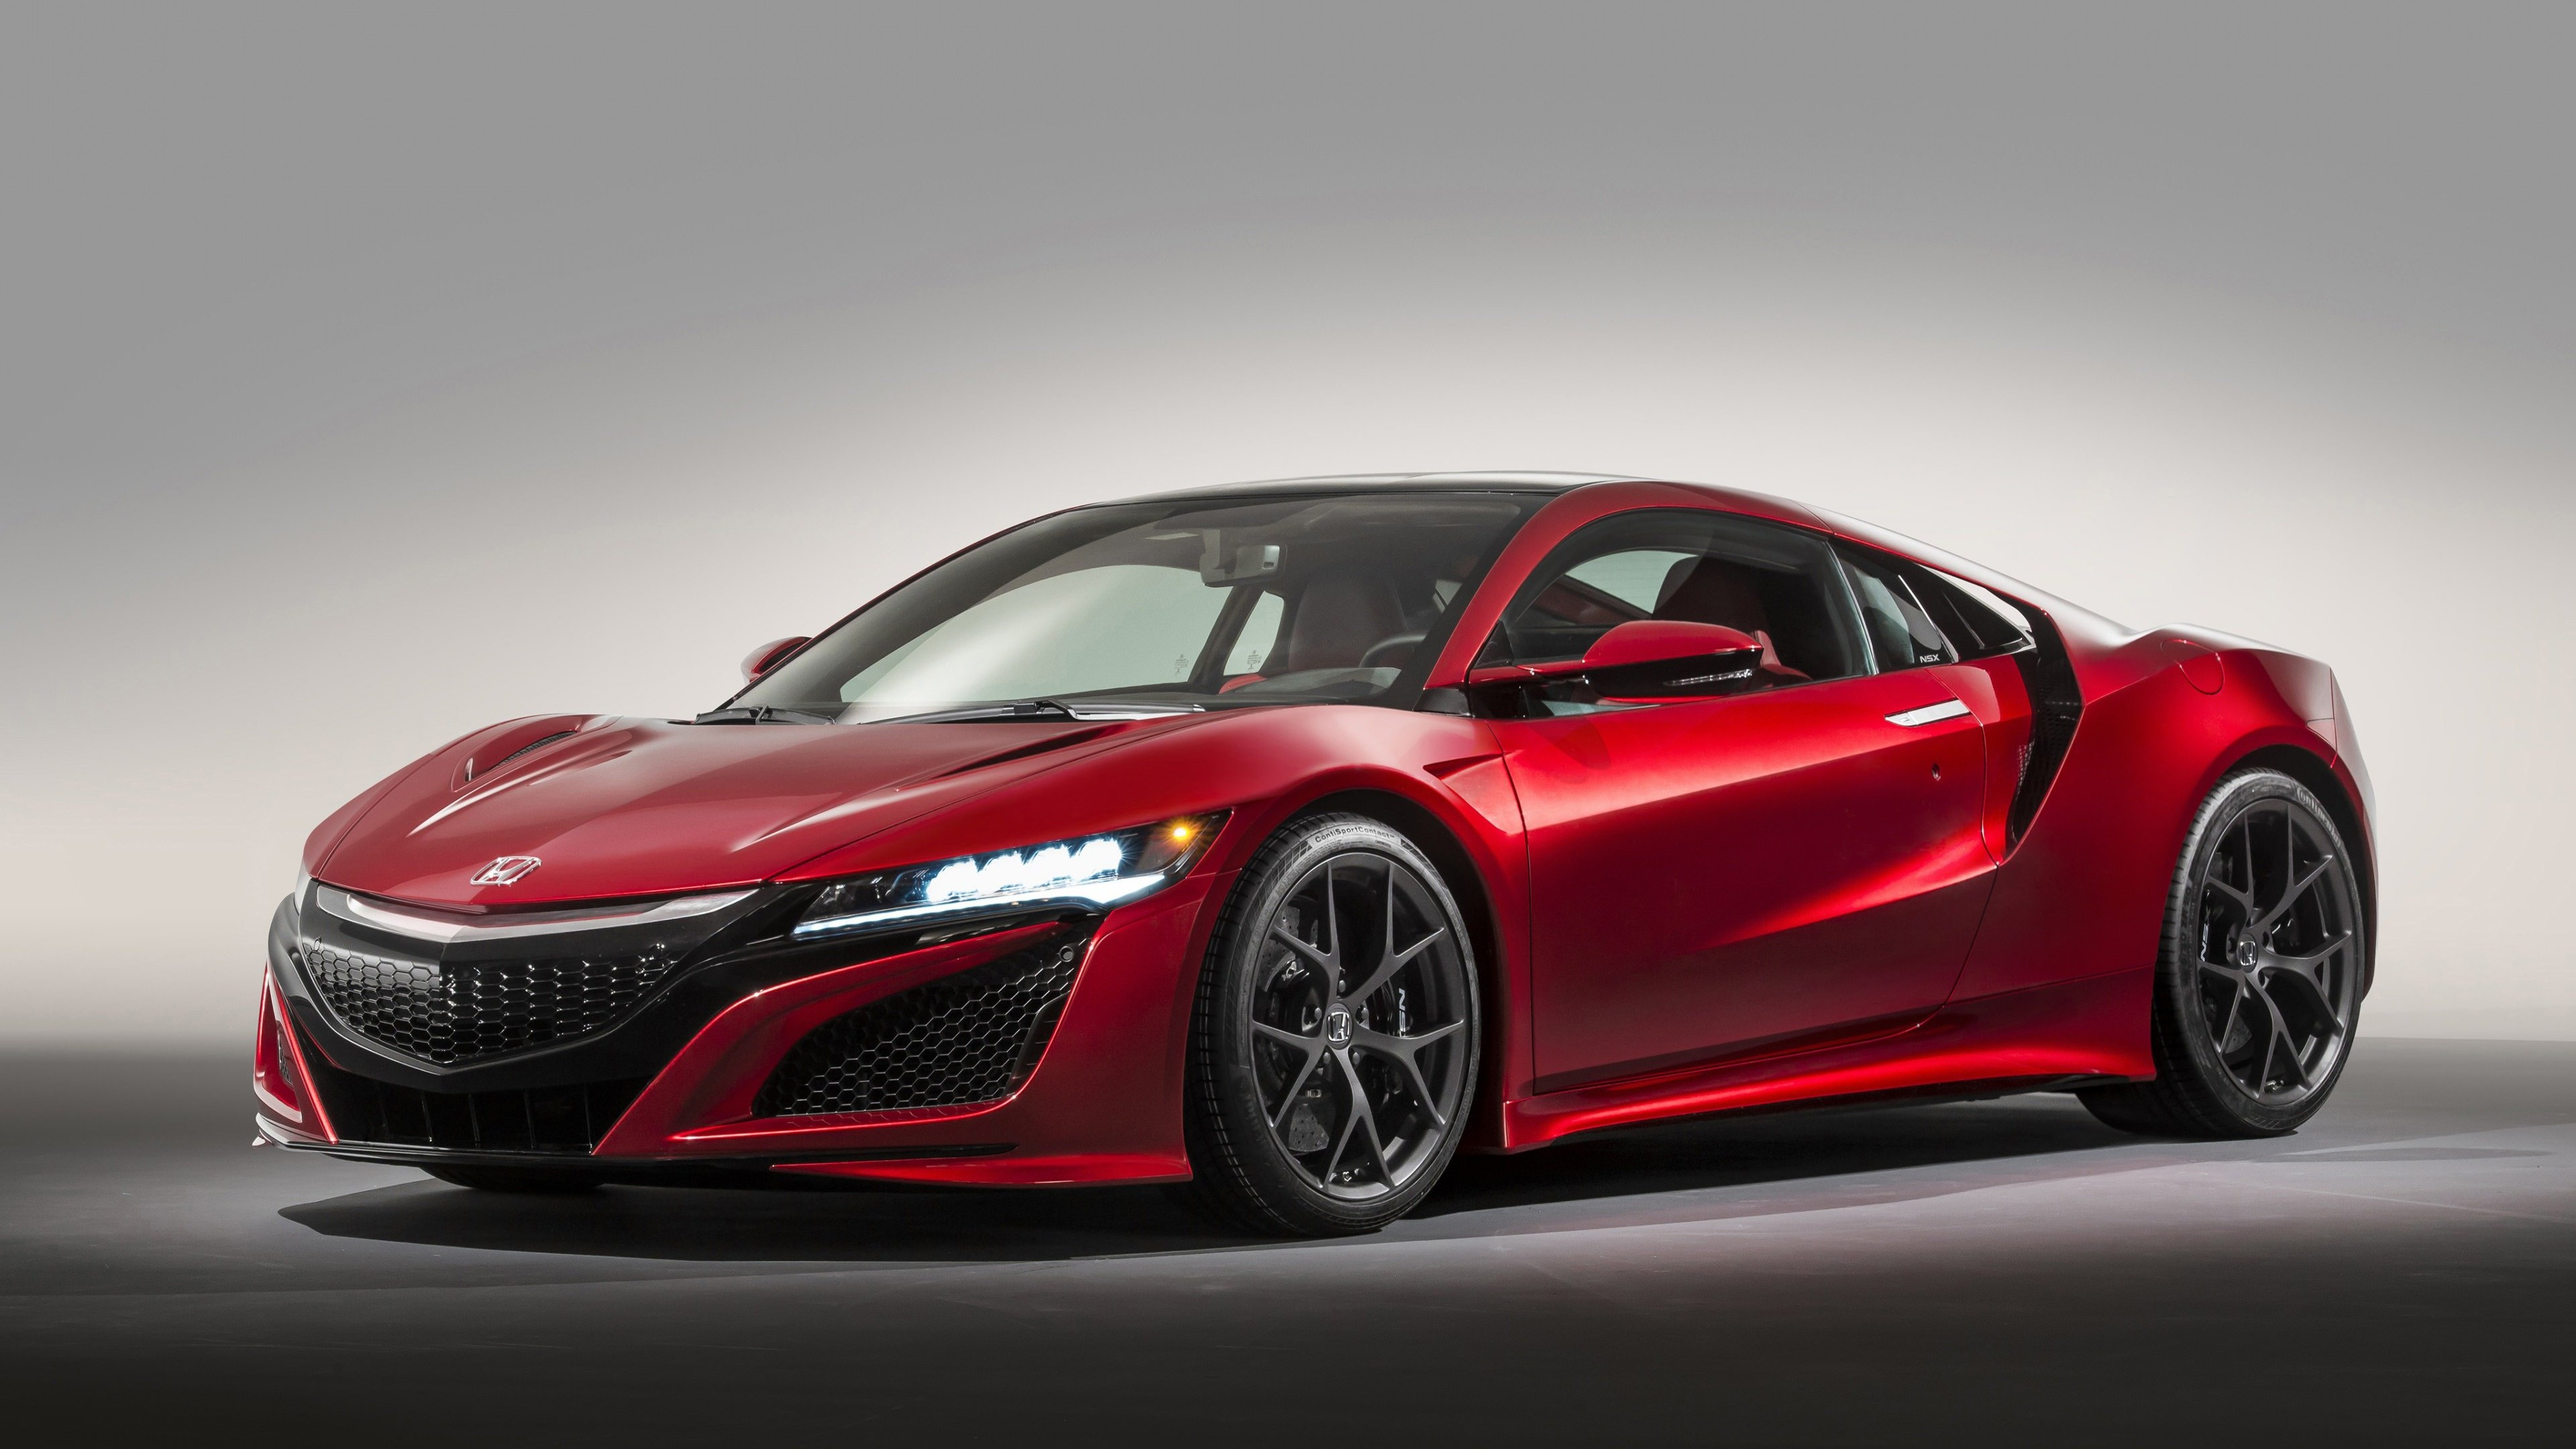 Honda NSX 2015 Wallpaper for Desktop 4K 3840x2160